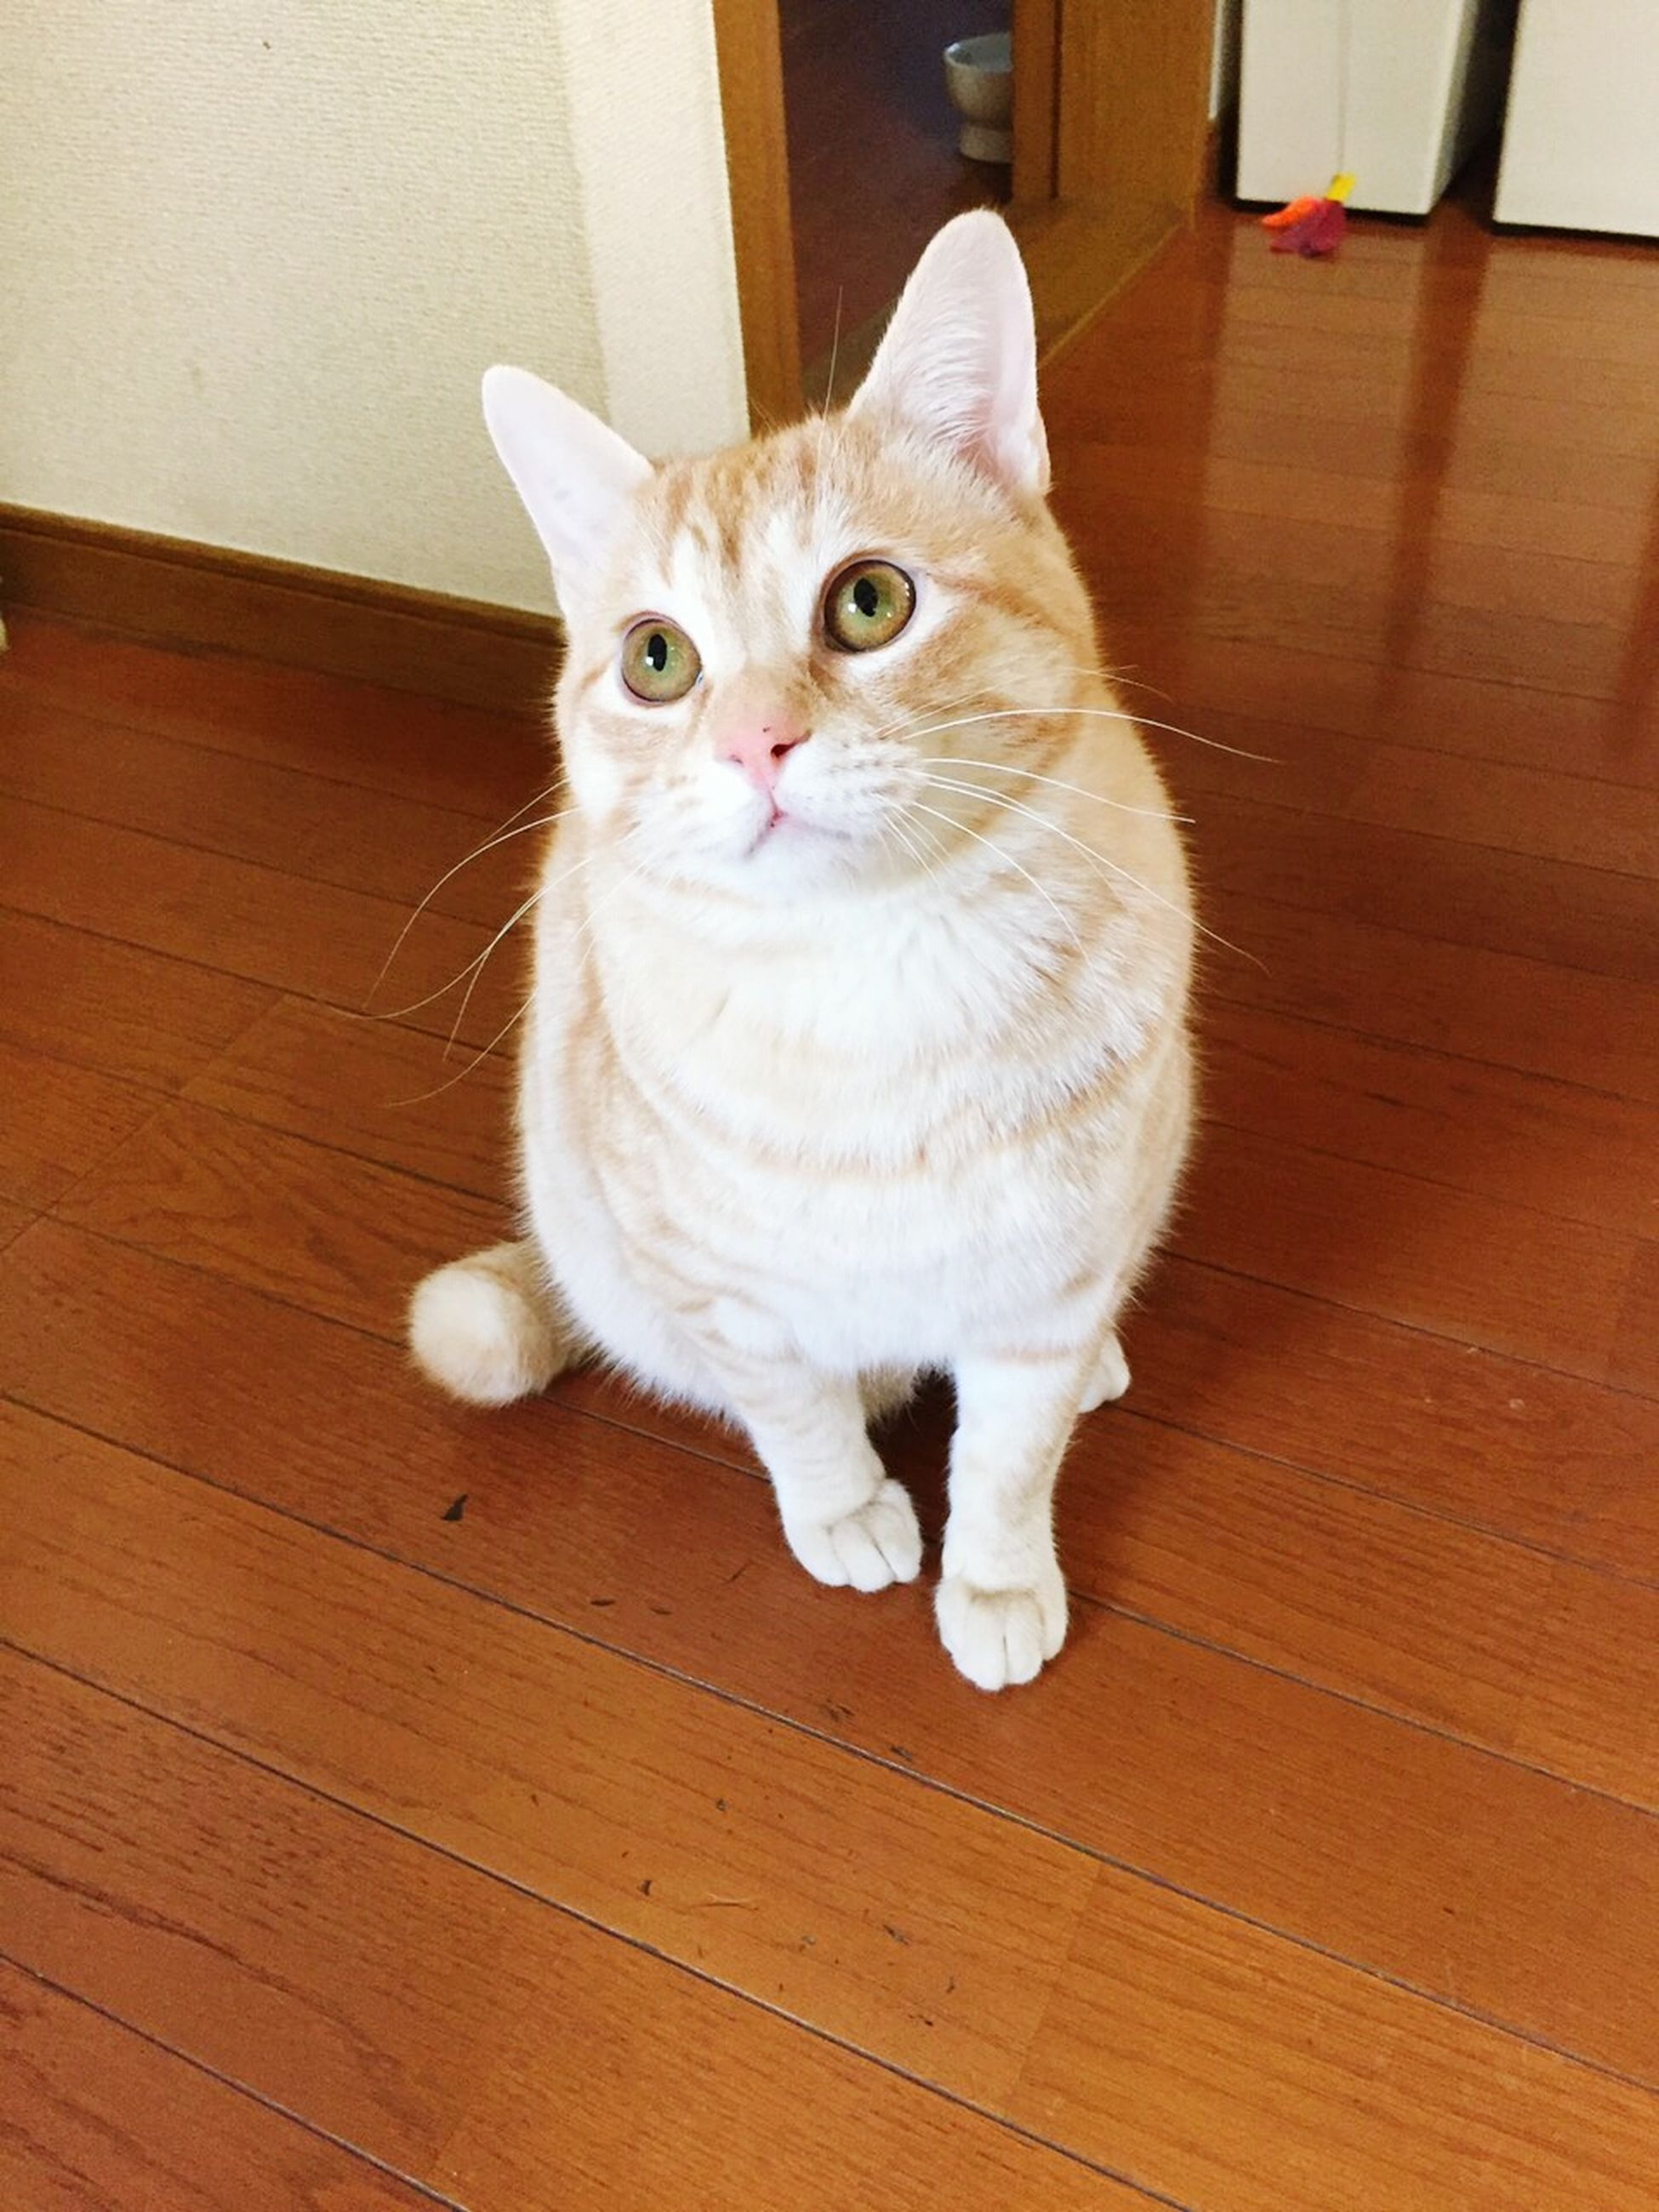 domestic animals, pets, domestic cat, animal themes, indoors, one animal, cat, looking at camera, portrait, whisker, feline, mammal, sitting, home interior, staring, alertness, full length, hardwood floor, animal eye, front view, flooring, at home, zoology, wooden floor, whiskers